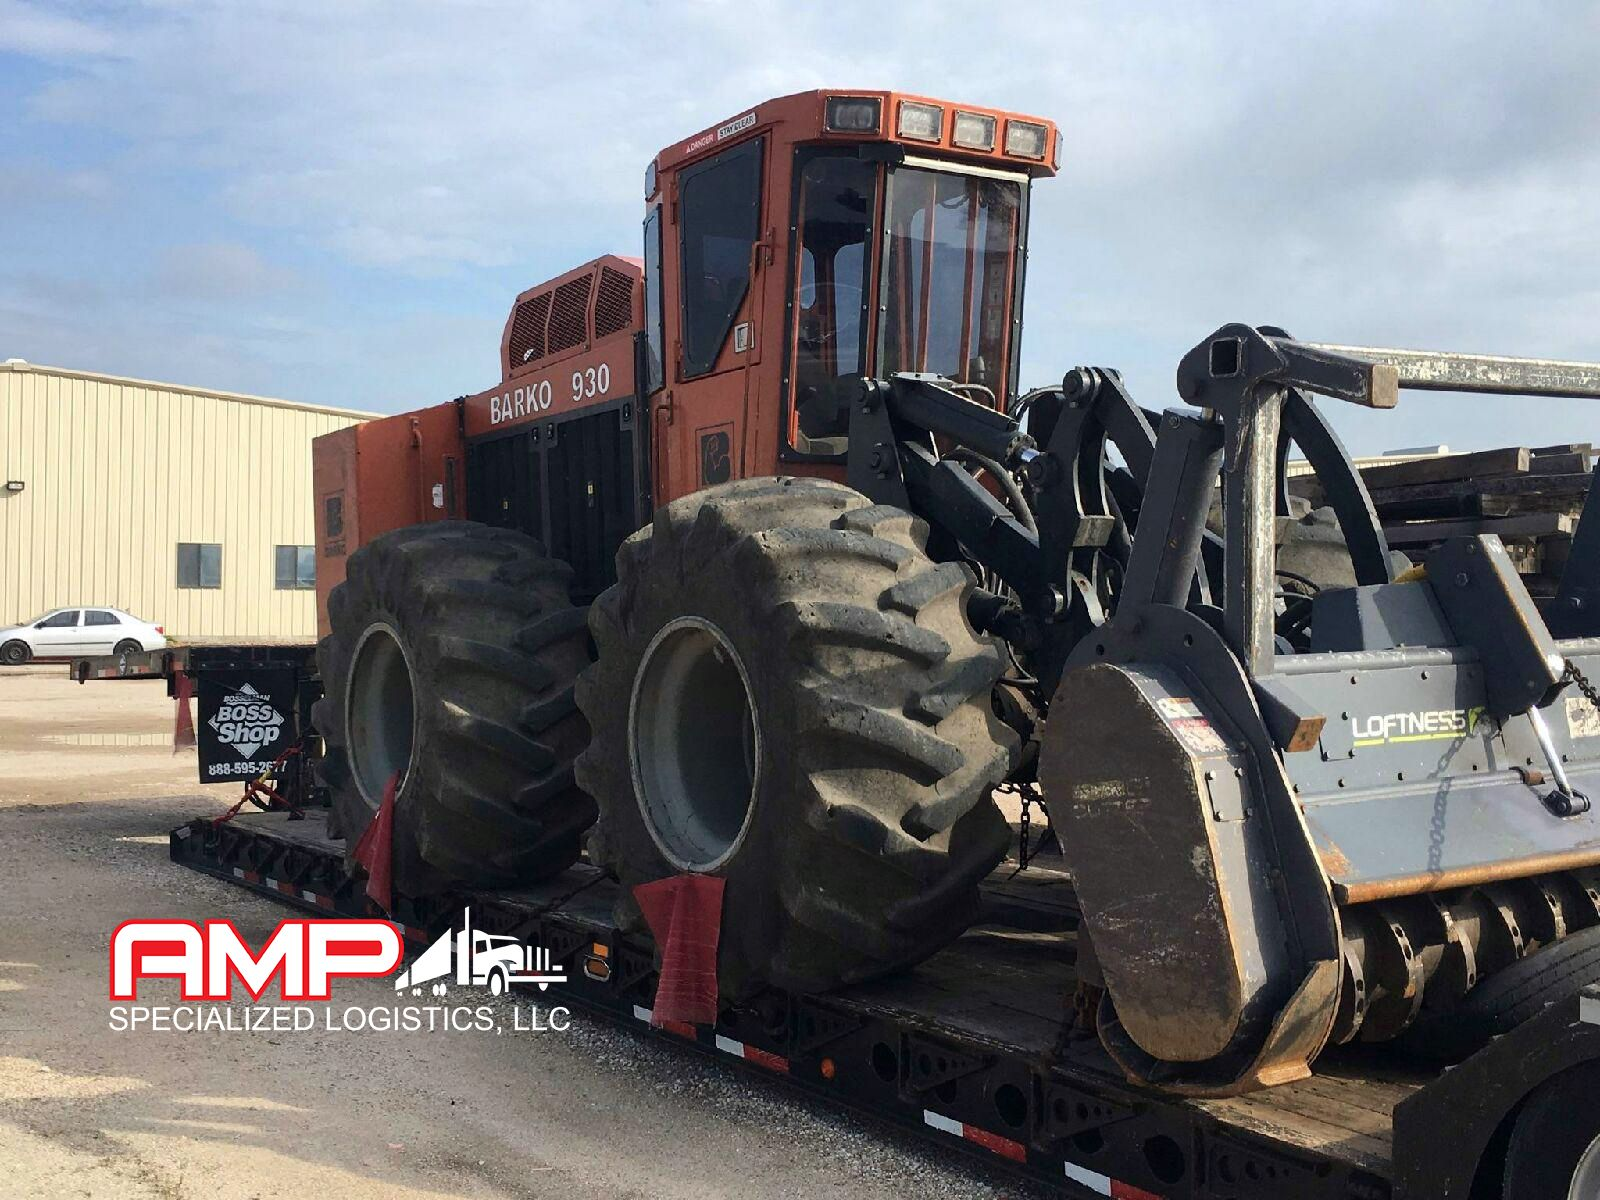 Heavy equipment hauling services equipment pickup and